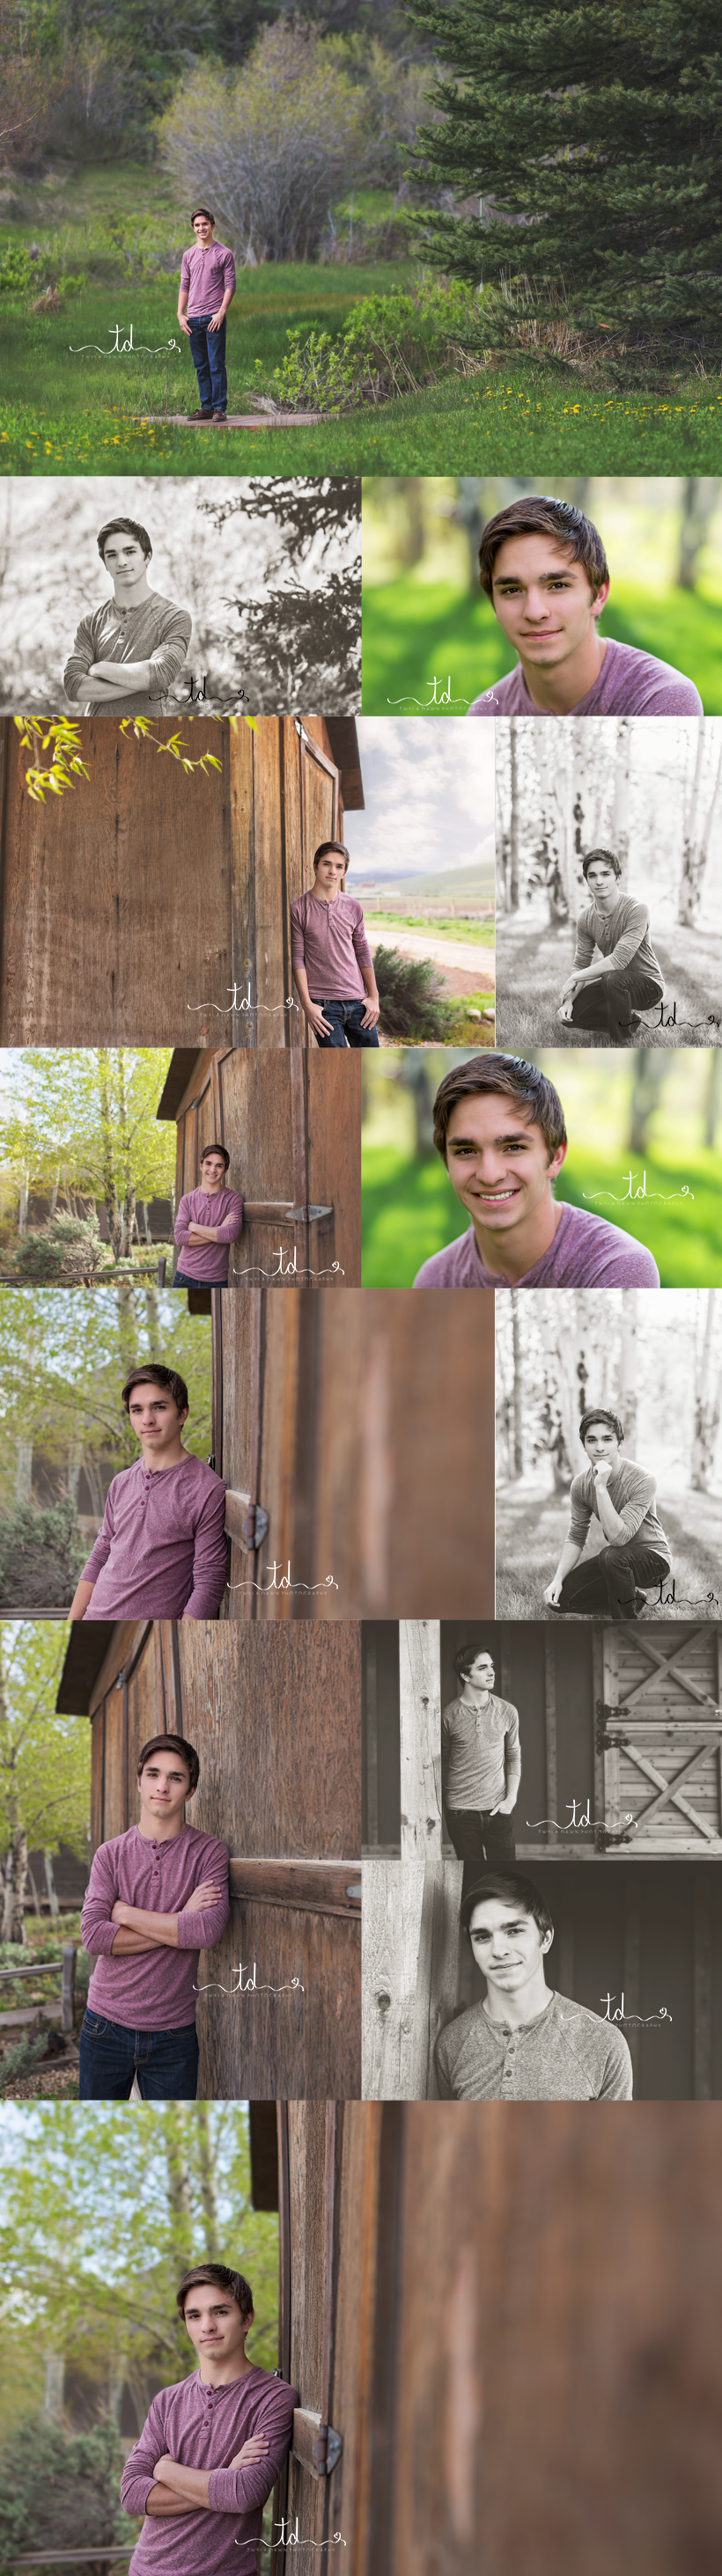 Park City Senior Photography | Outdoor Senior Session